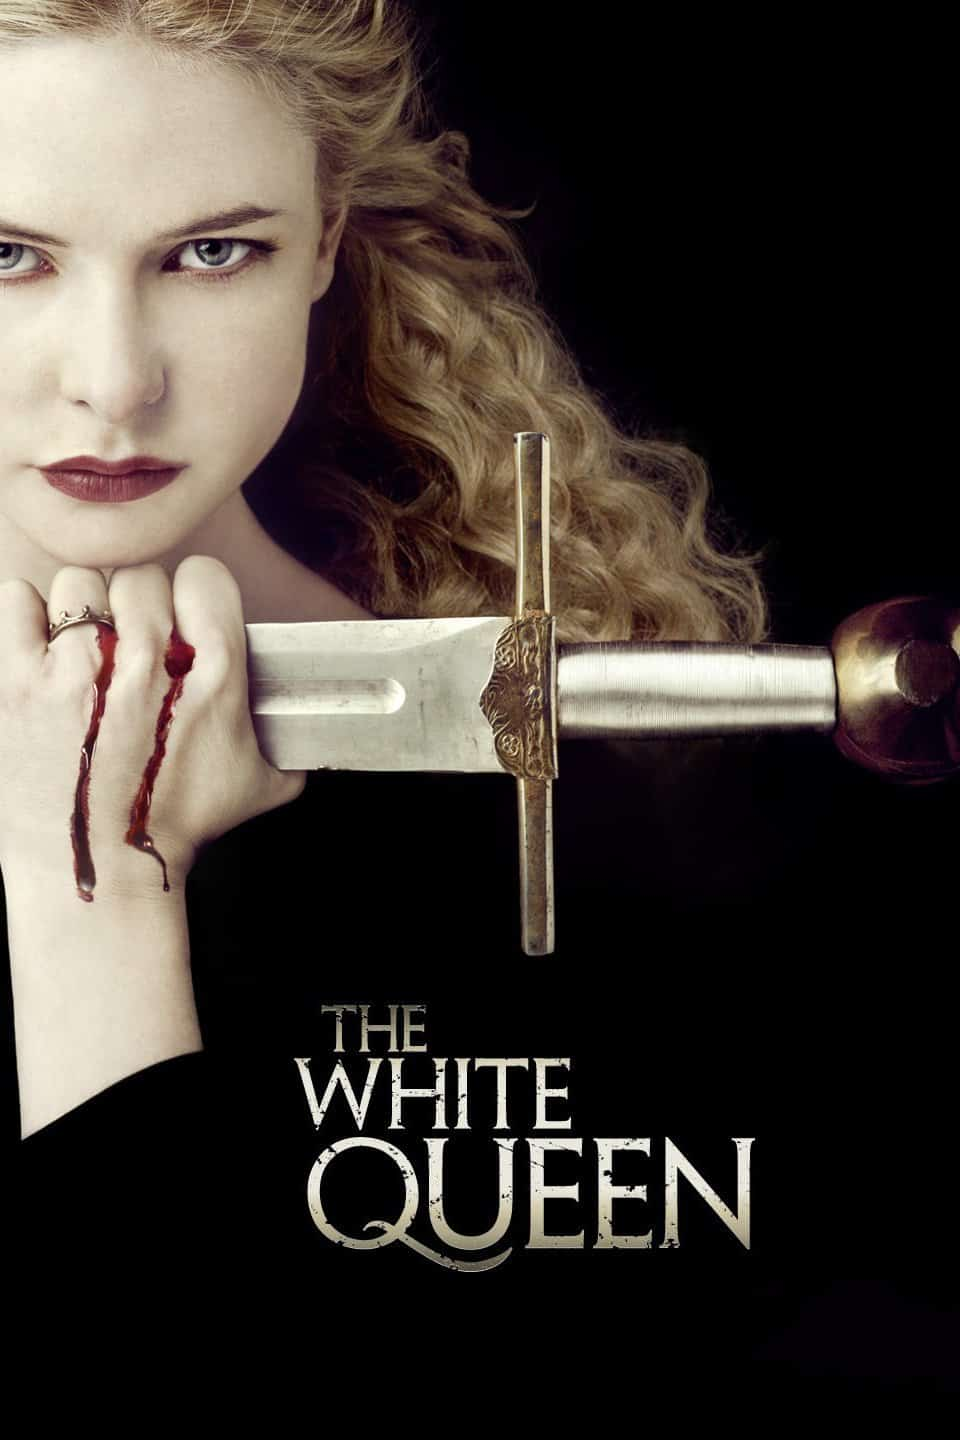 The White Queen, 2013